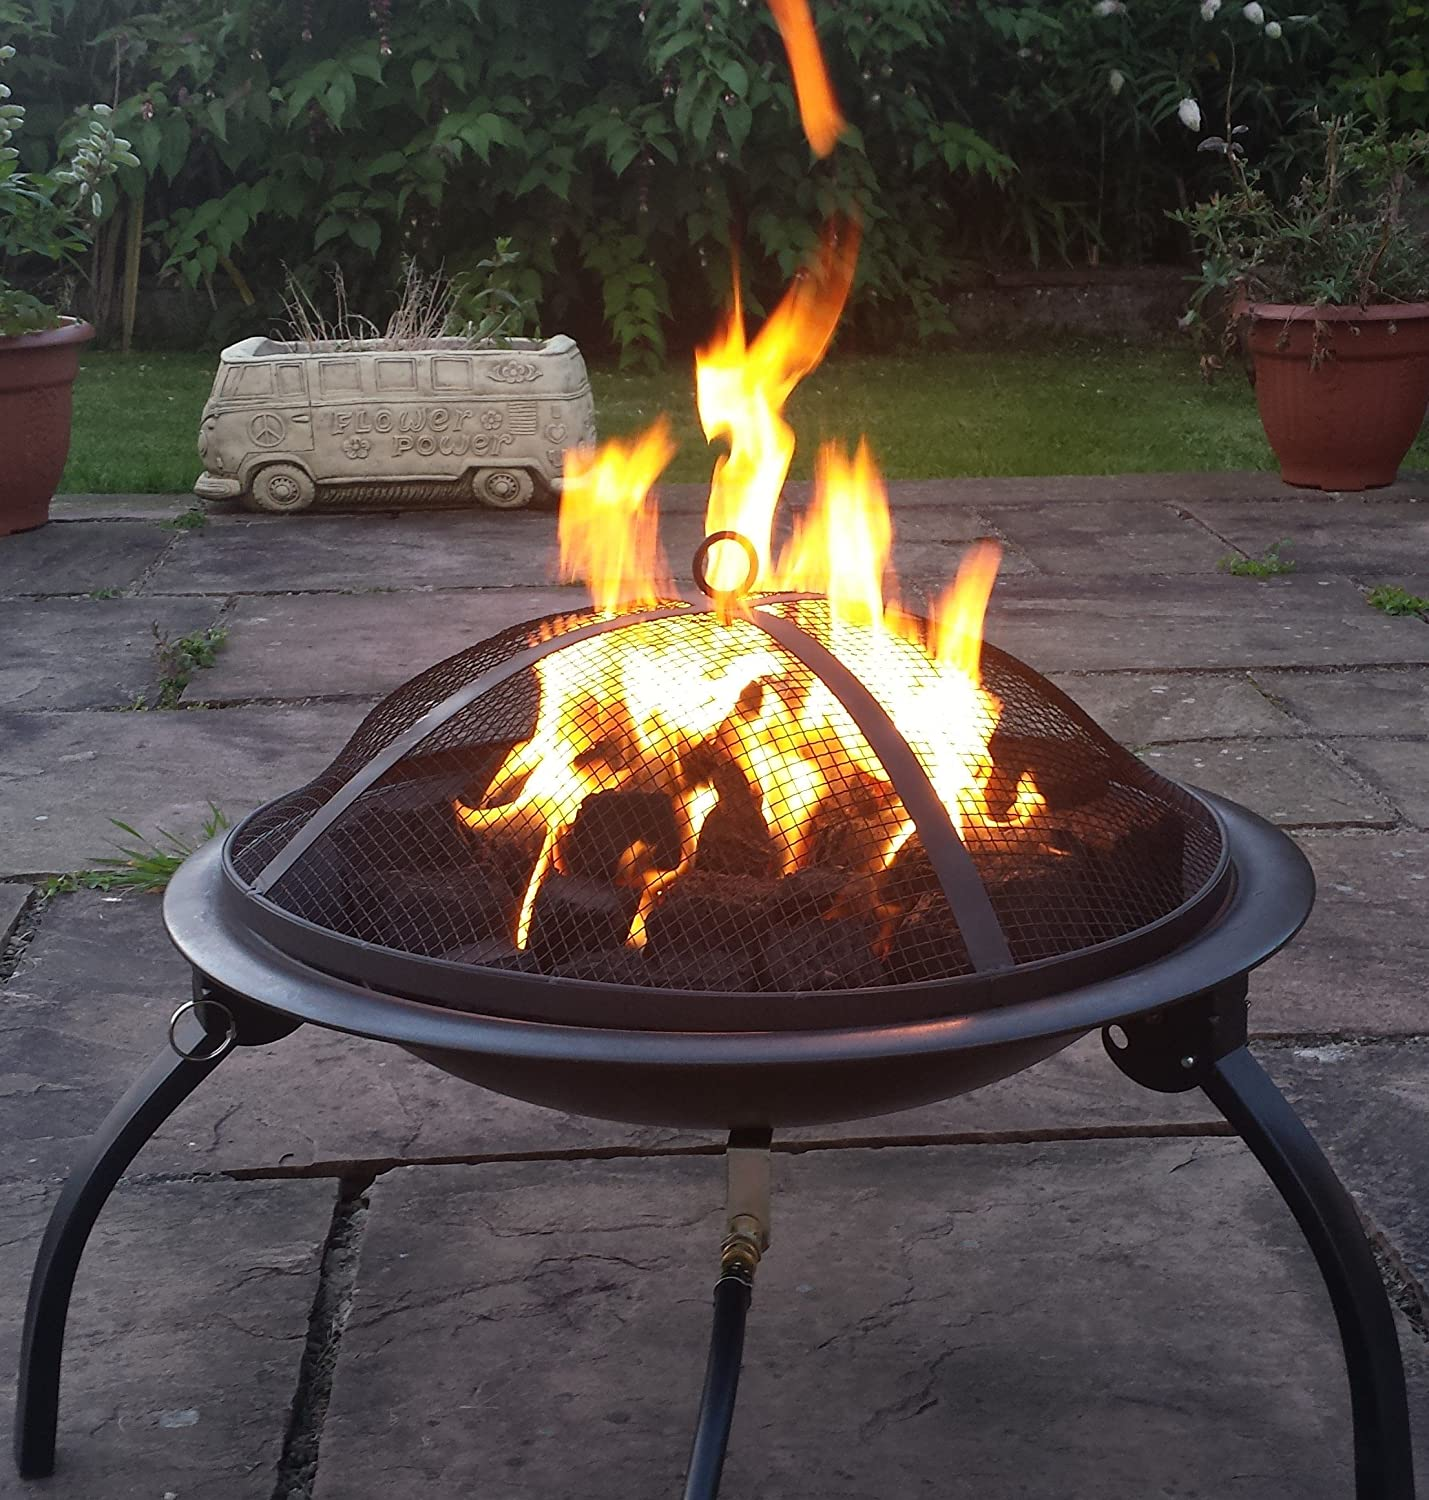 festival fires limited saturn bowl gas fire pit real flame lpg